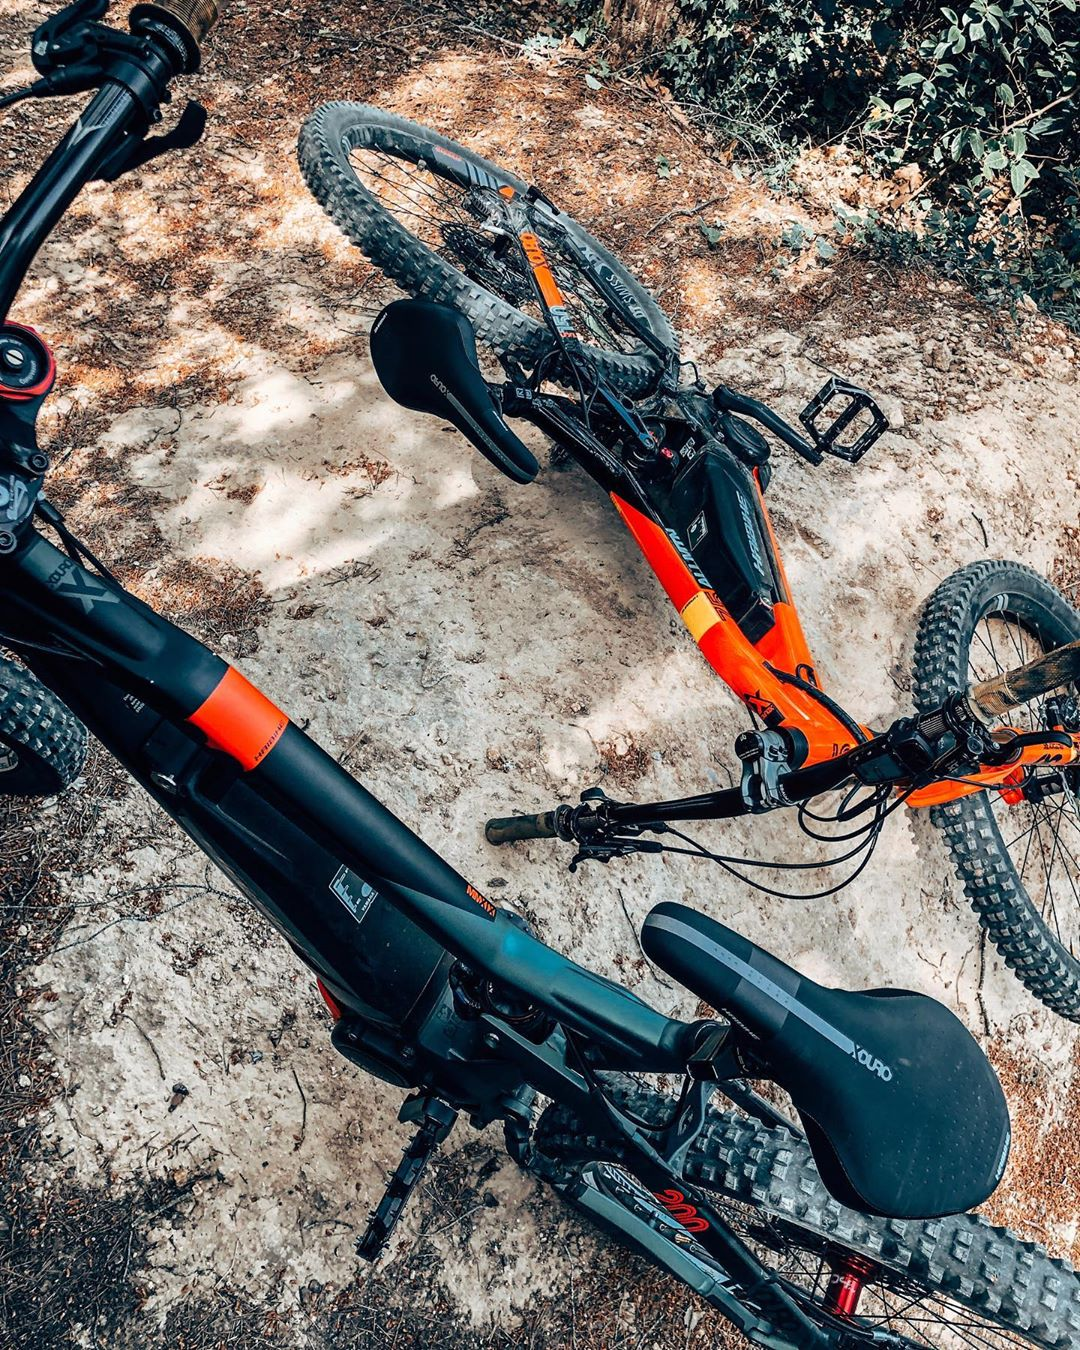 We are this week down in the south of France with the legendary @yannickgranieri shooting a short introductory edit and a few photos in between. #emtb #haibike #ebike #photoshoot